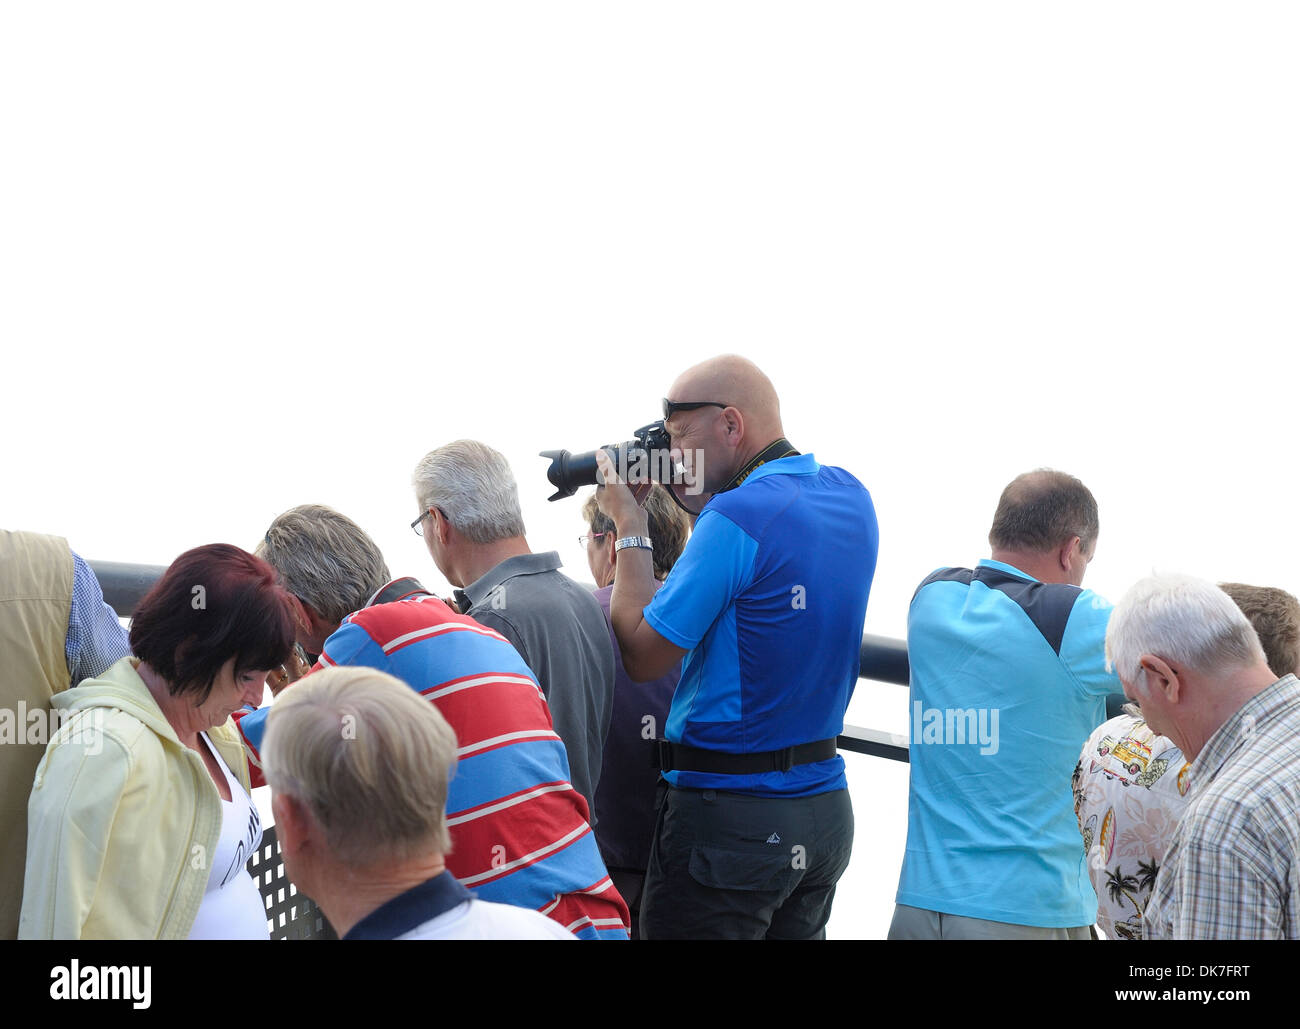 A photographer taking a photograph with an SLR camera - Stock Image